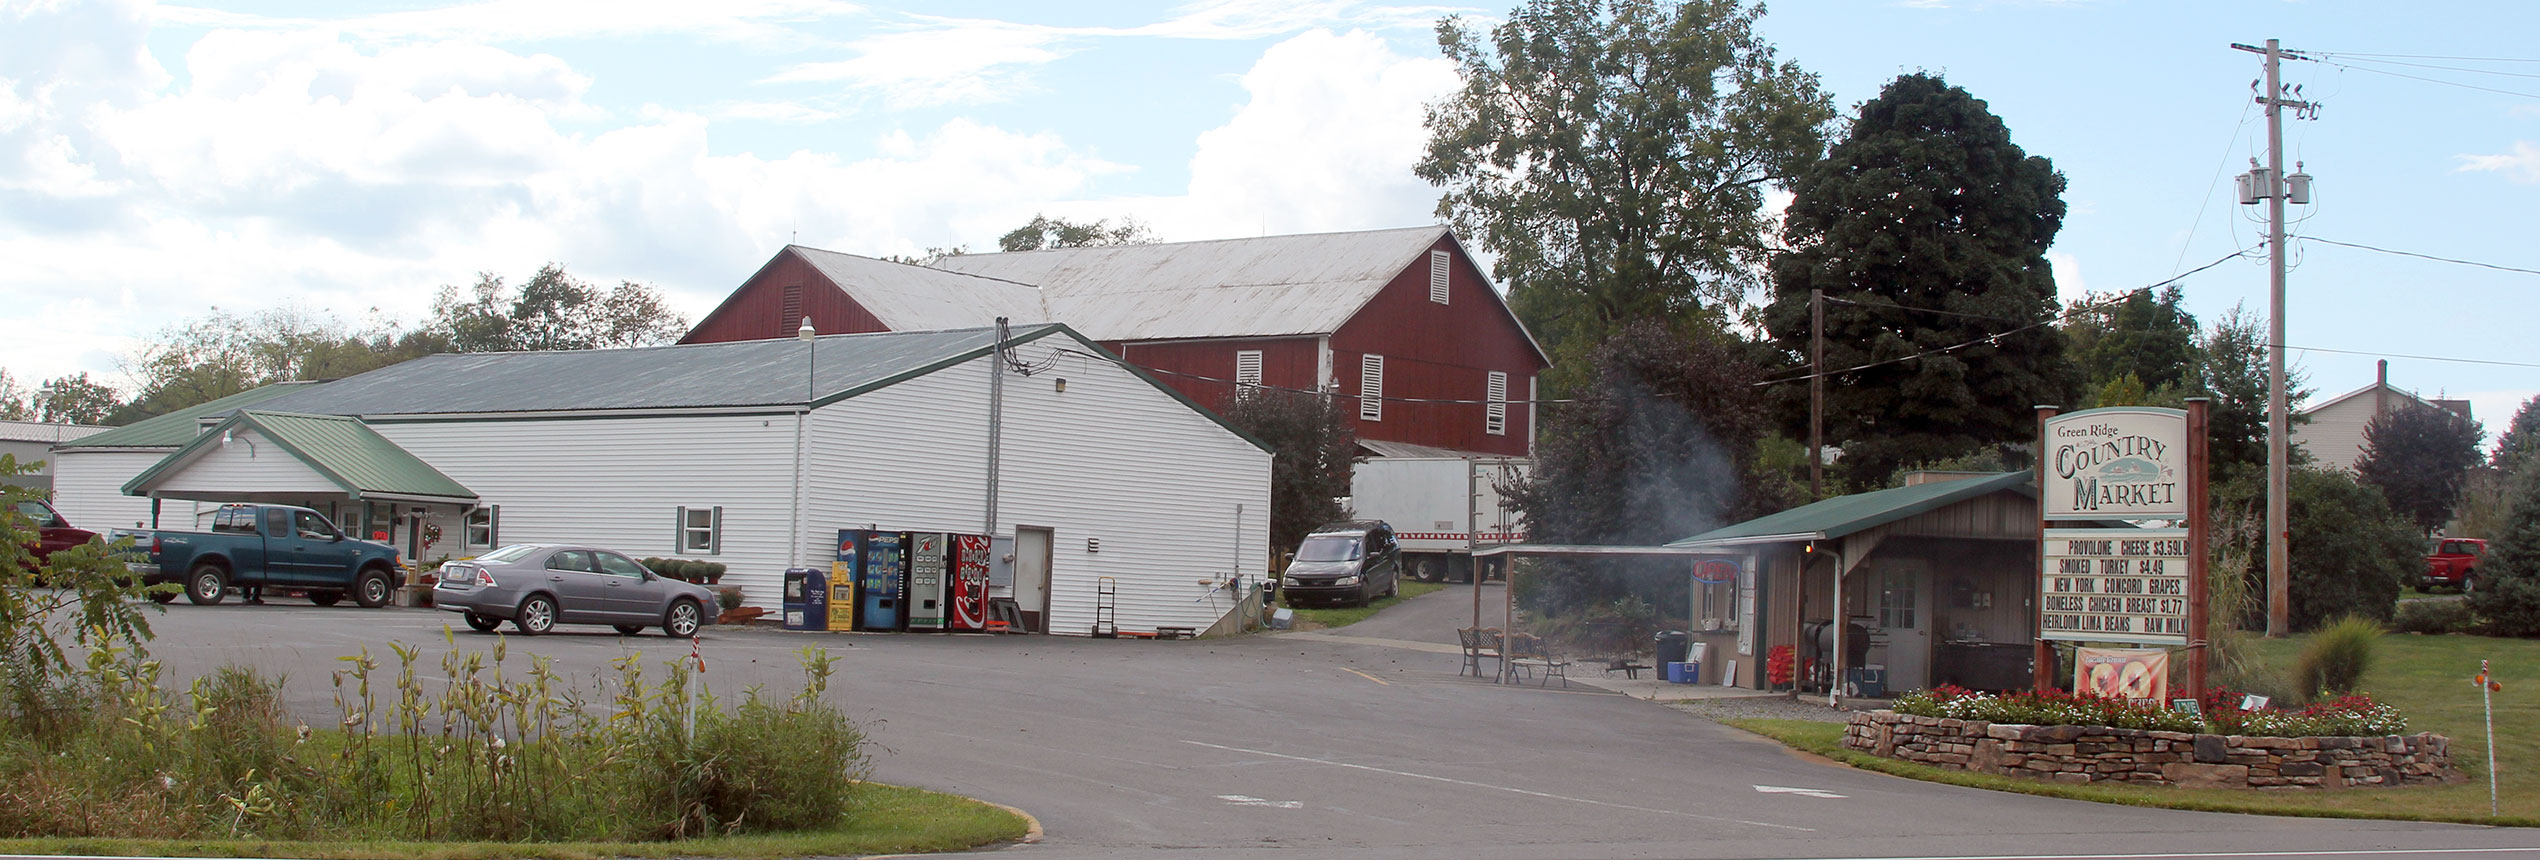 Green Ridge Country Market, Mifflinburg, Pennsylvania